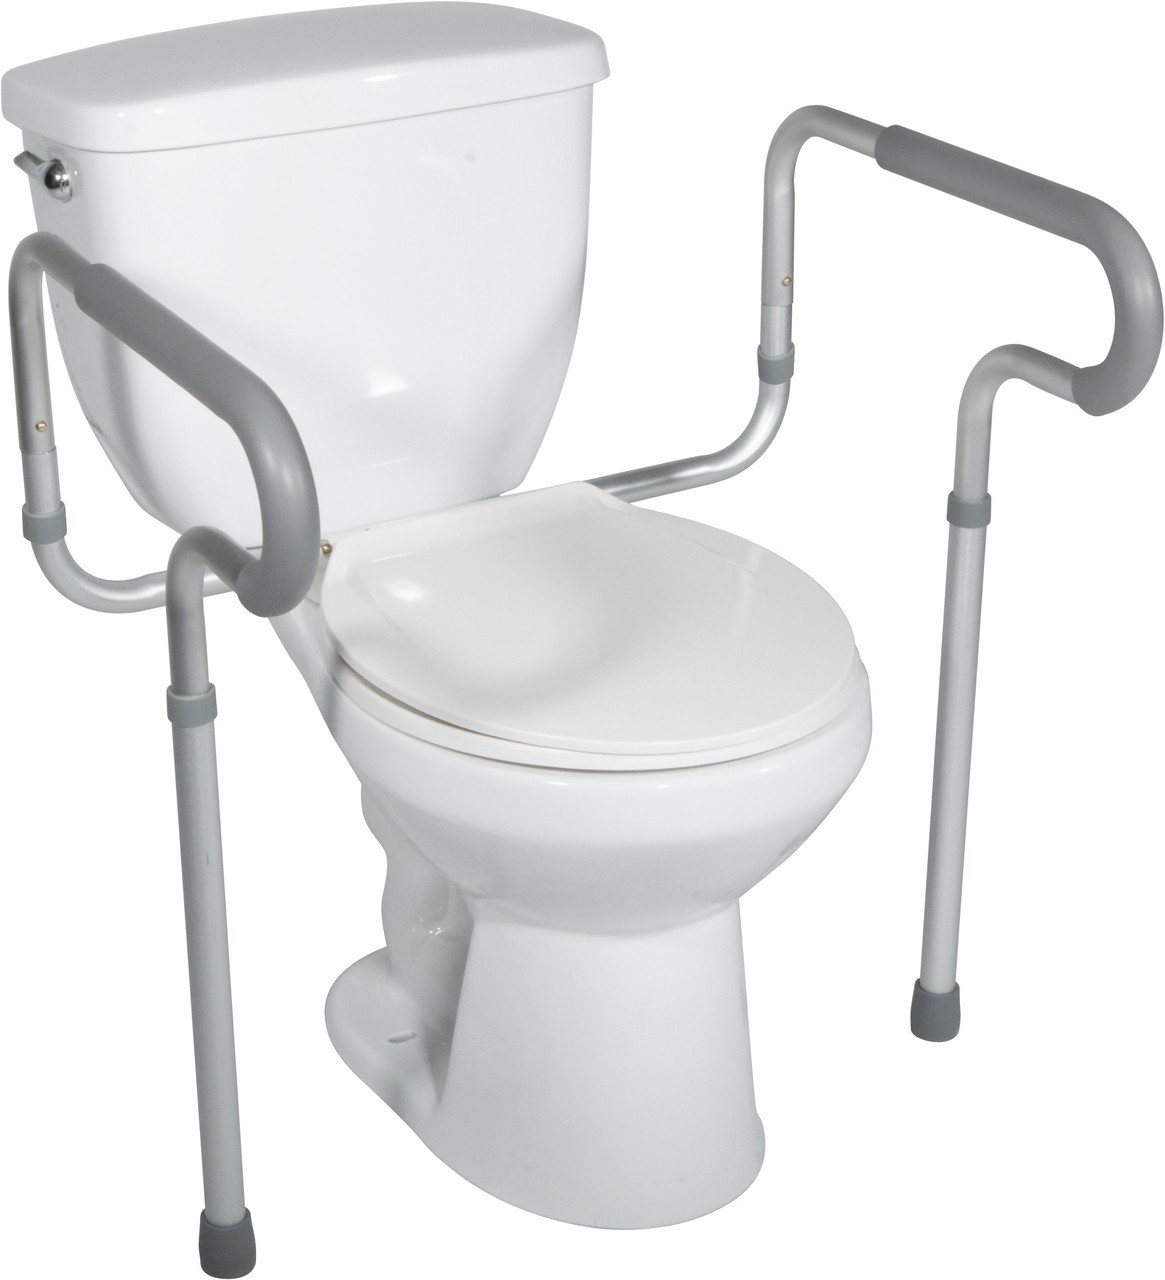 Bathroom & Toilet Safety - Toilet Seat Risers & Safety Frames ...